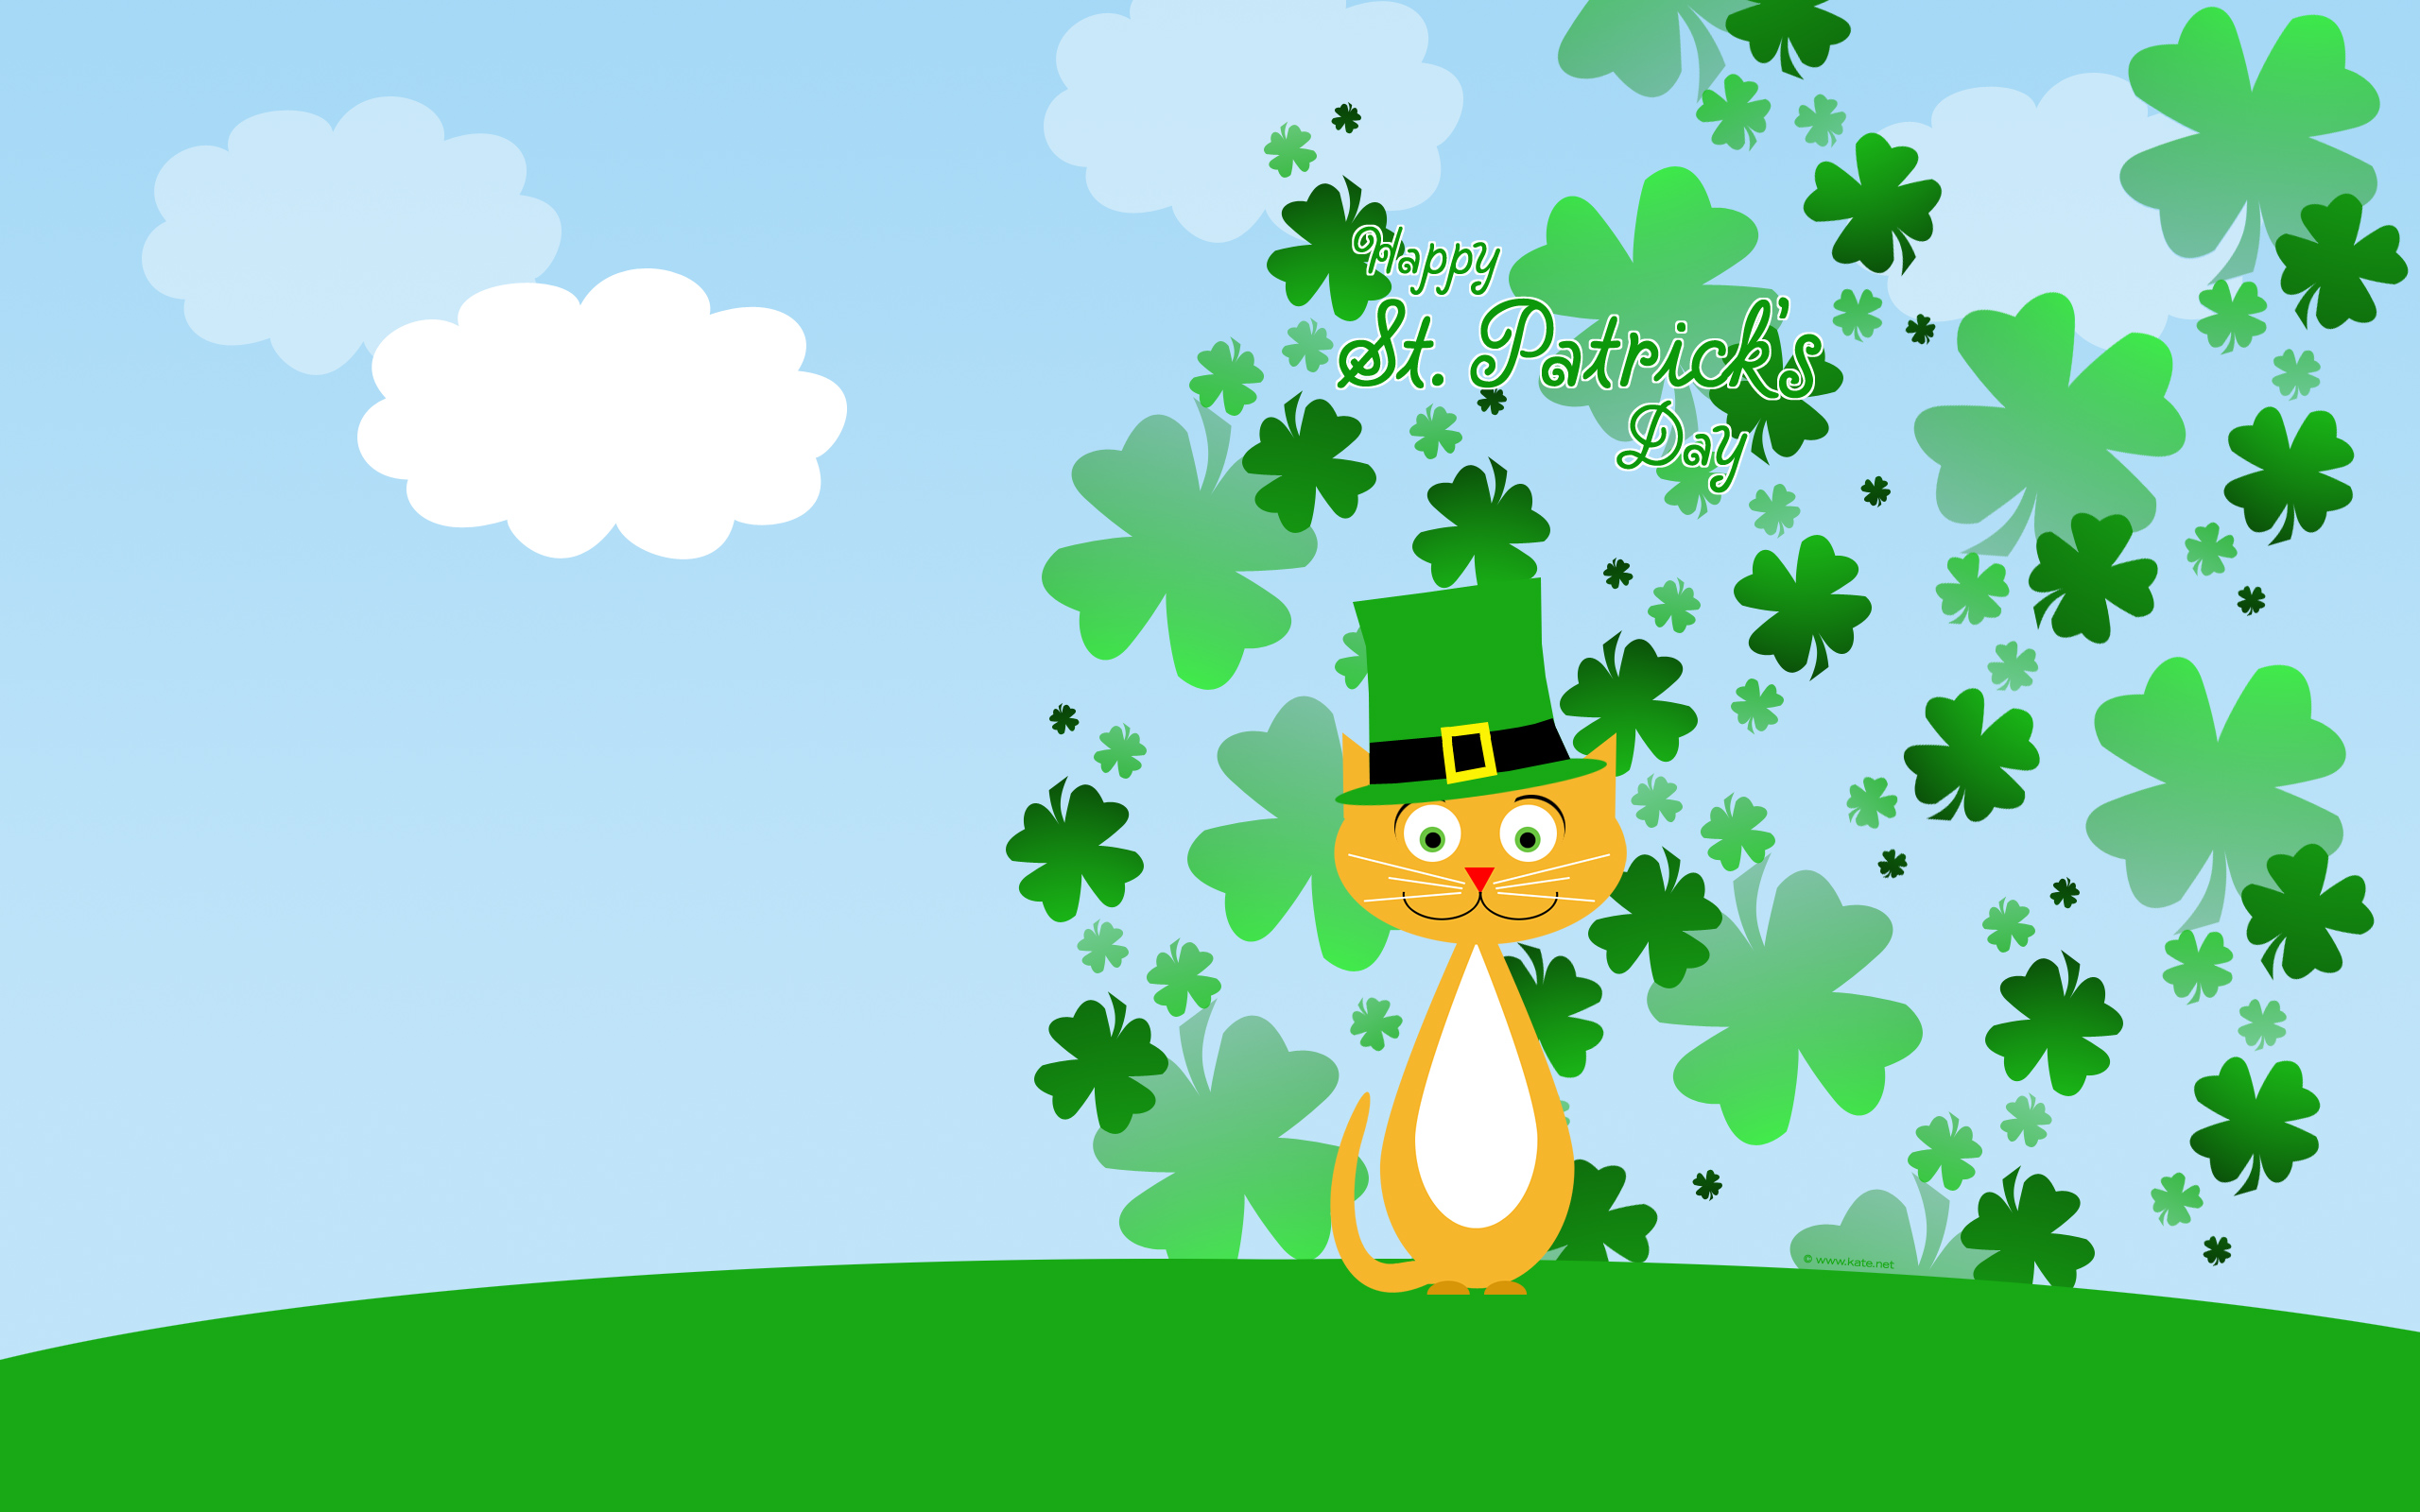 Clover Holiday St Patricks Day Wallpapers Wallpapers 2560x1600